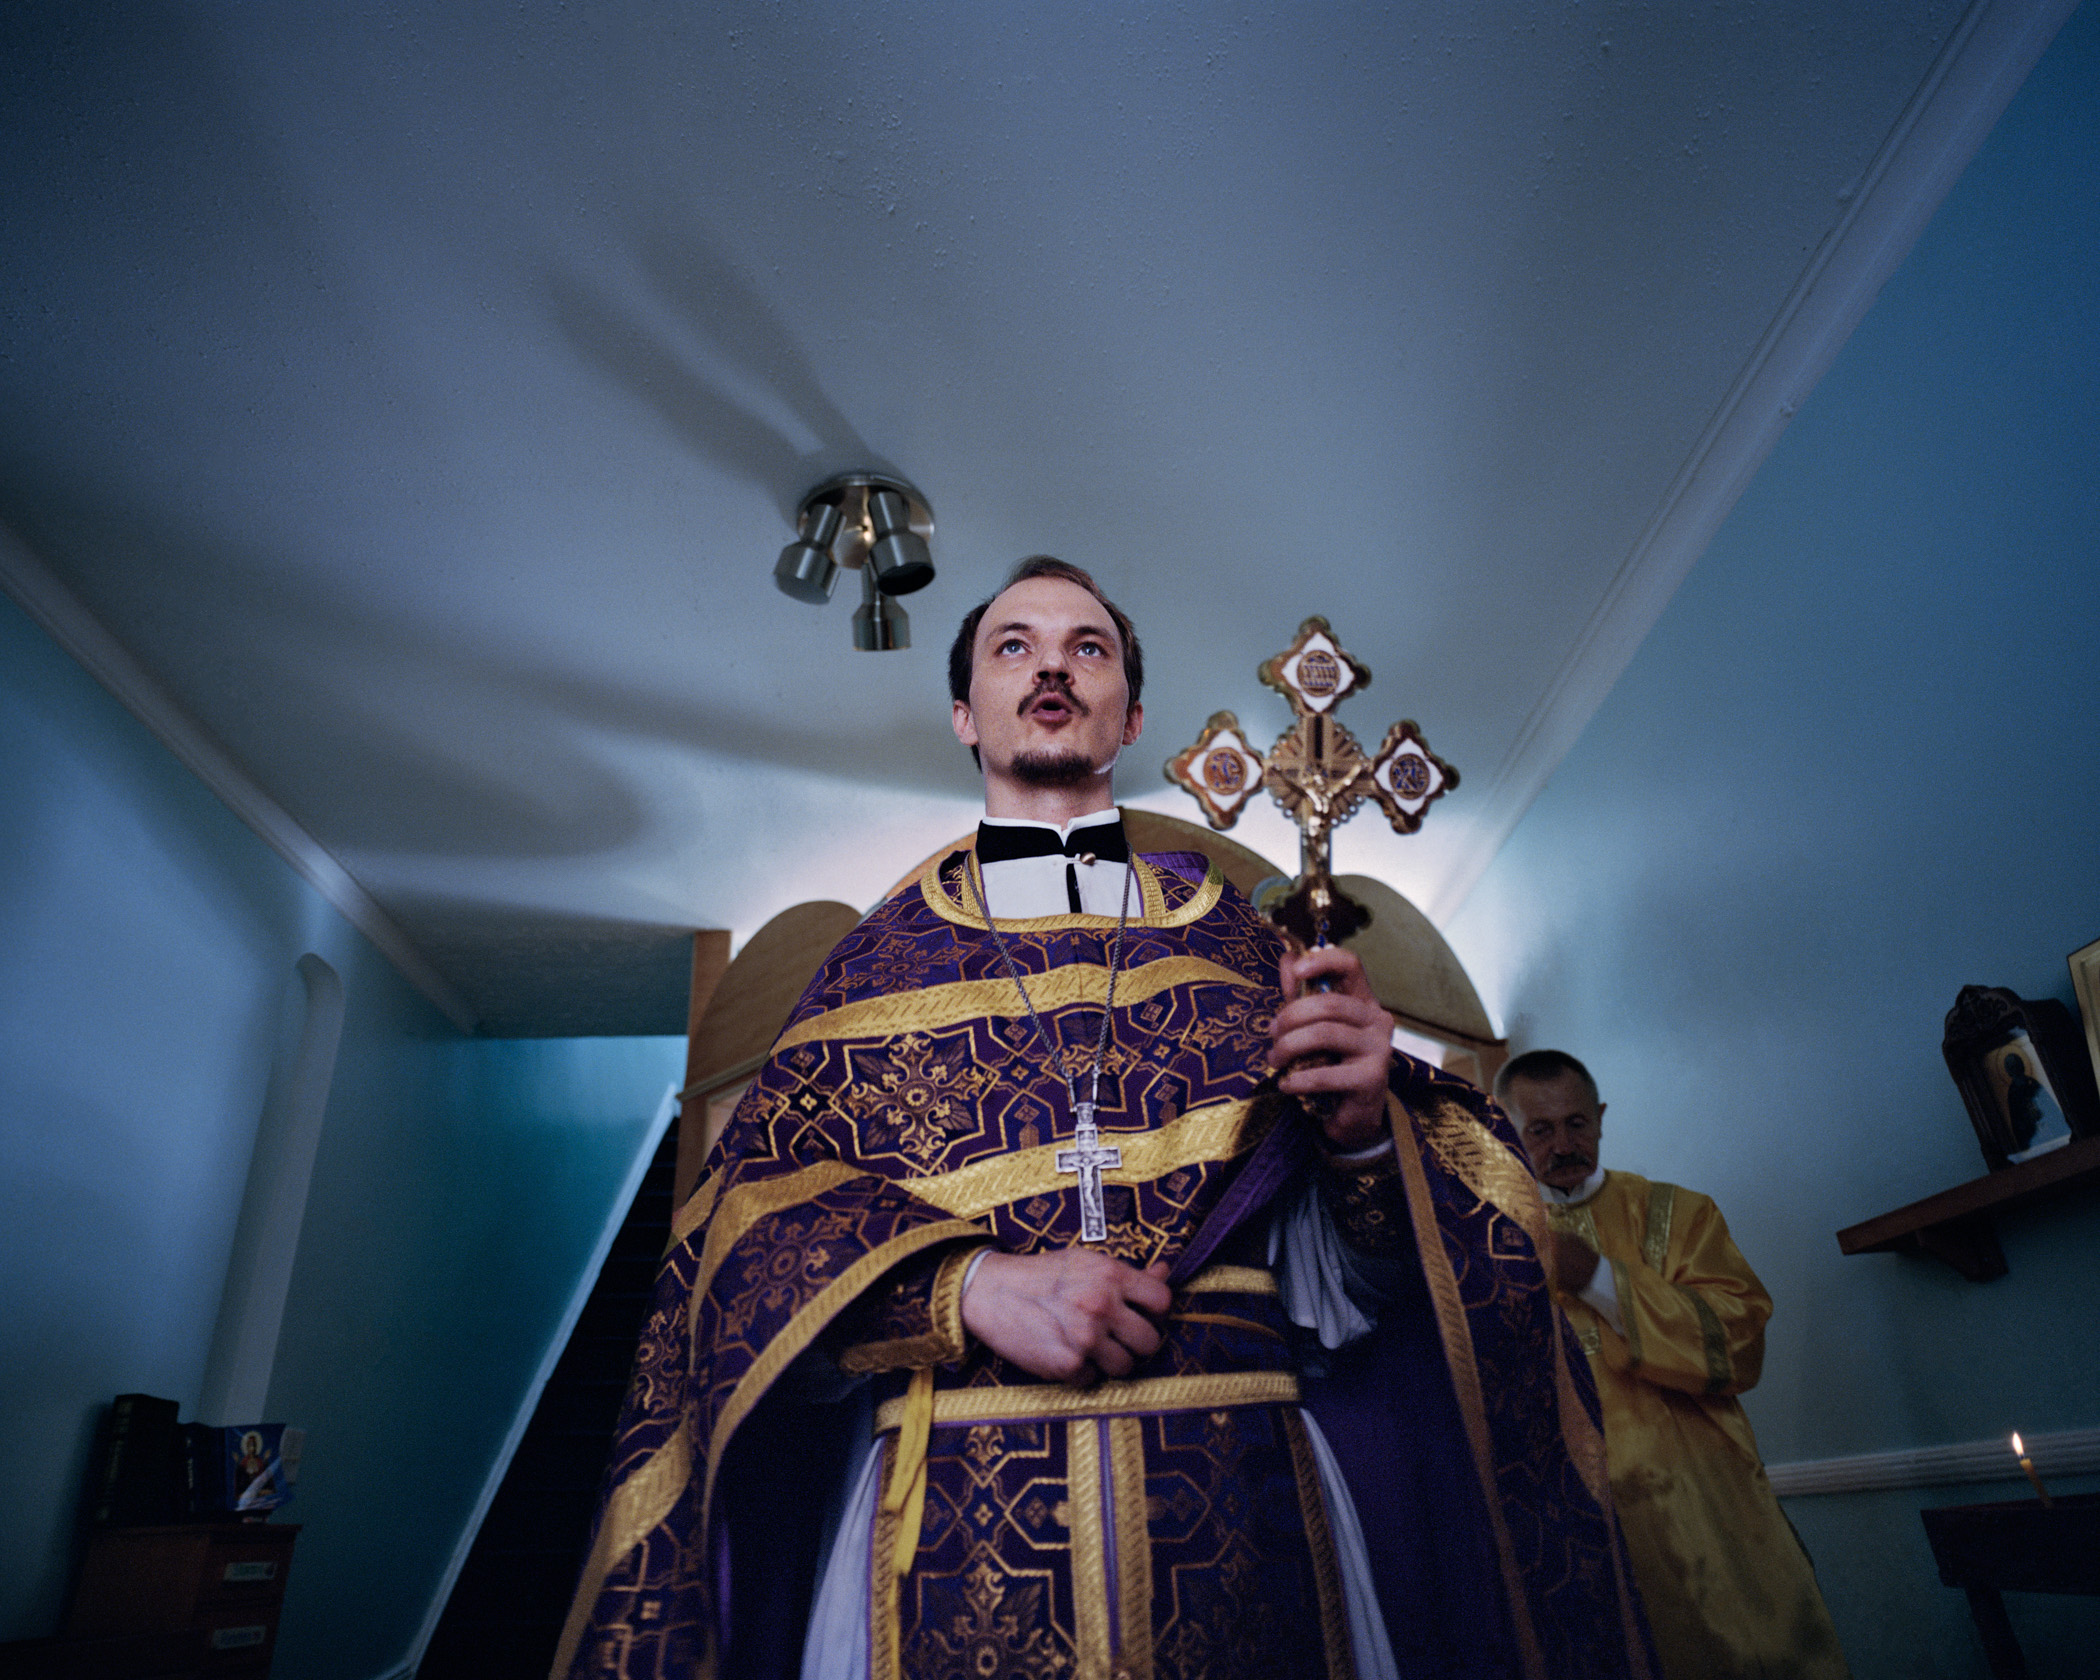 Father Nikodim, sanctifying the chapel built by recovering addicts and current residents of House of Labor and Love. (Photo by Alexey Yurenev/GroundTruth)